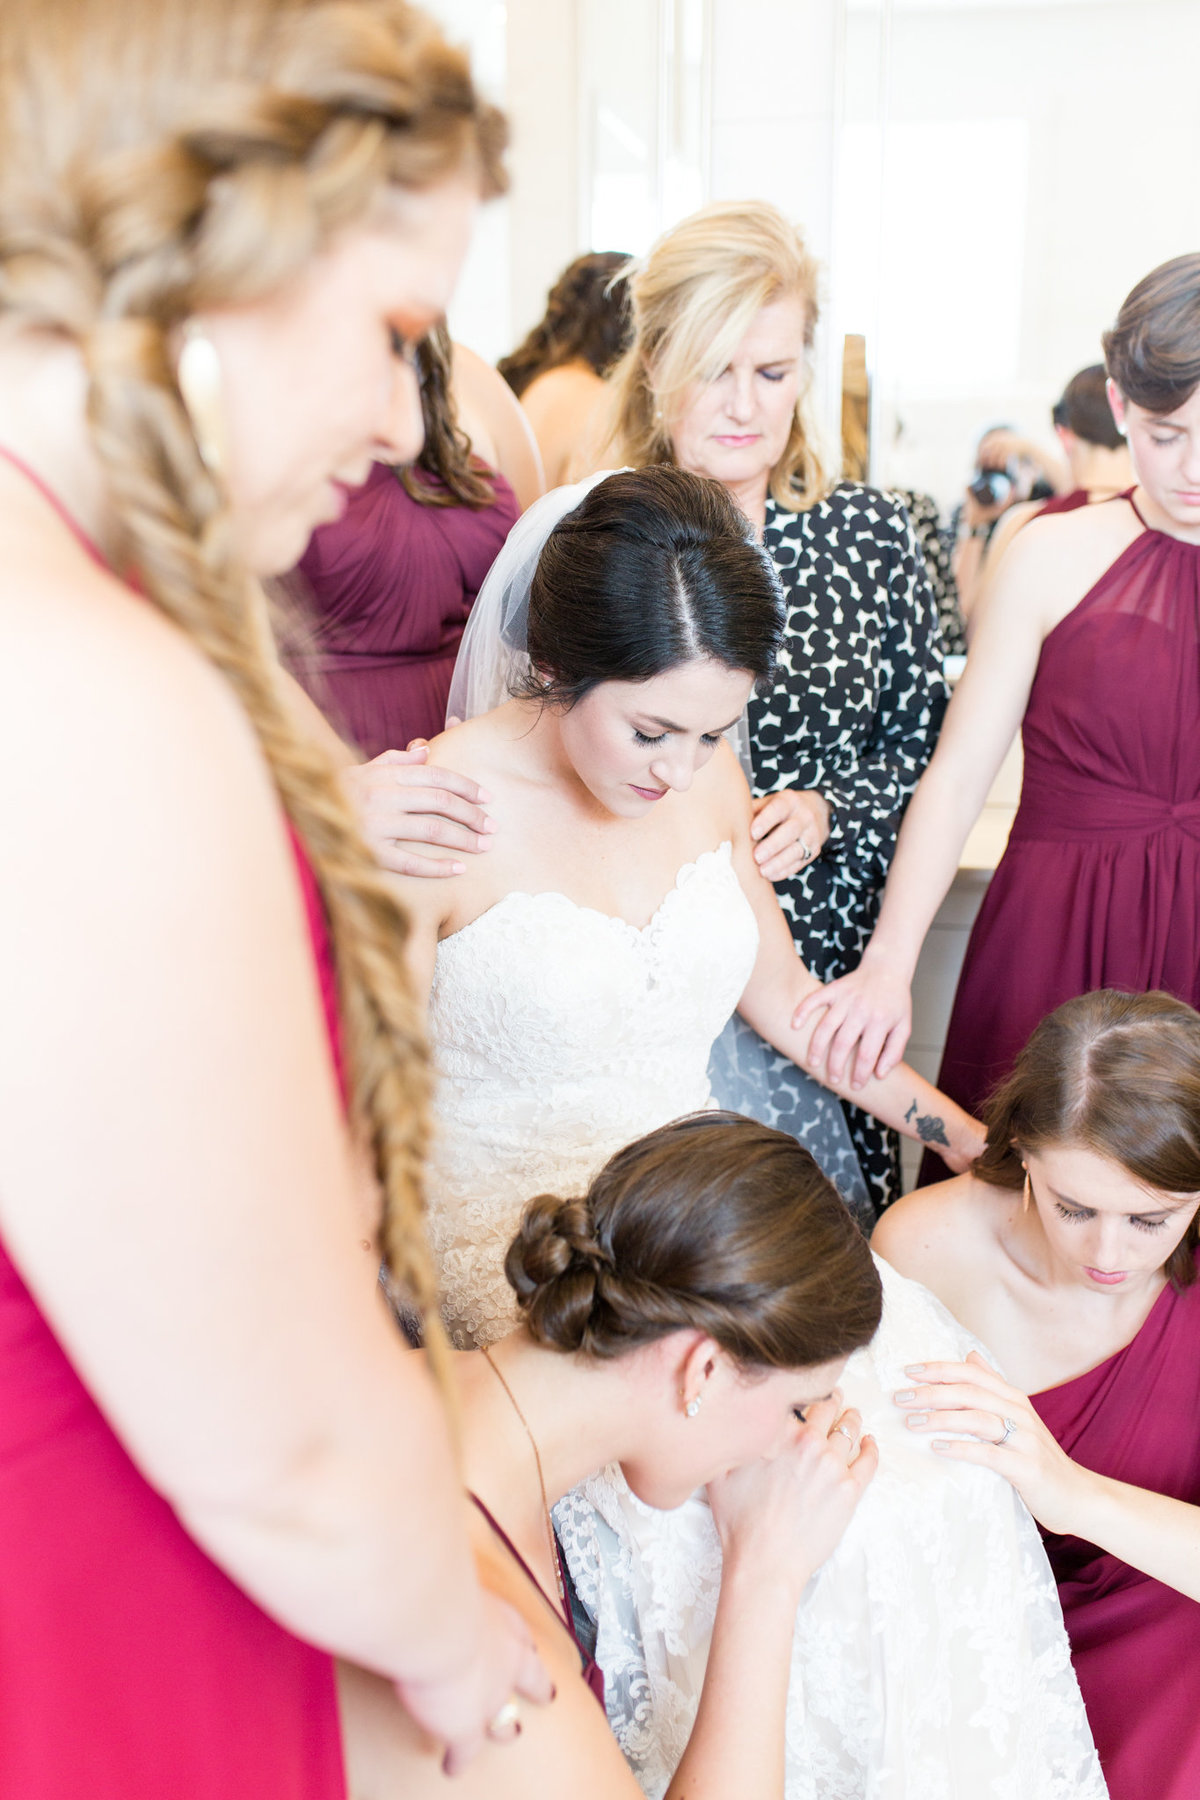 Nick & Sam Wedding | The Nest at Ruth Farms | Sami Kathryn Photography | Dallas Wedding Photographer-111